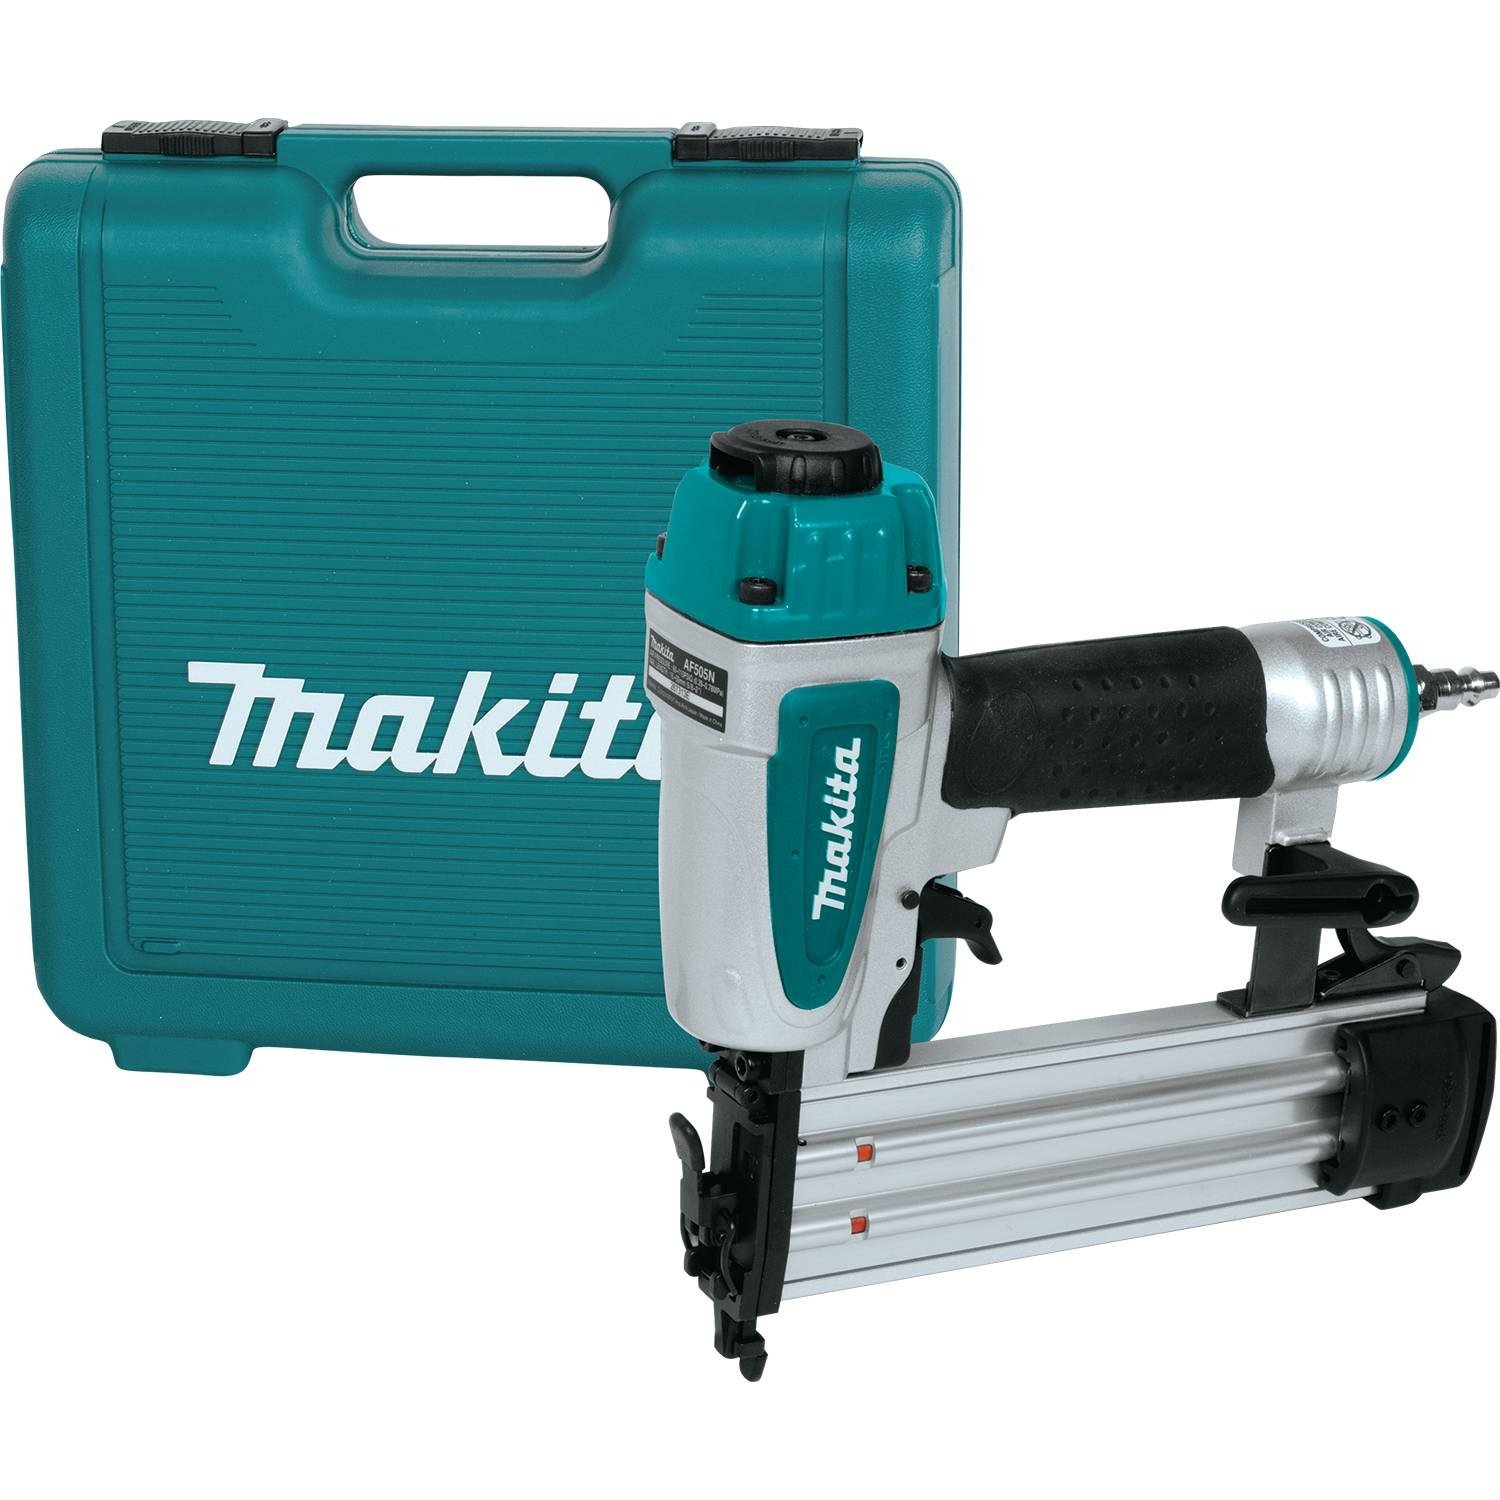 Makita - Cloueur pneumatique - 8 bar - 50 mm - Makita - AF505N product image